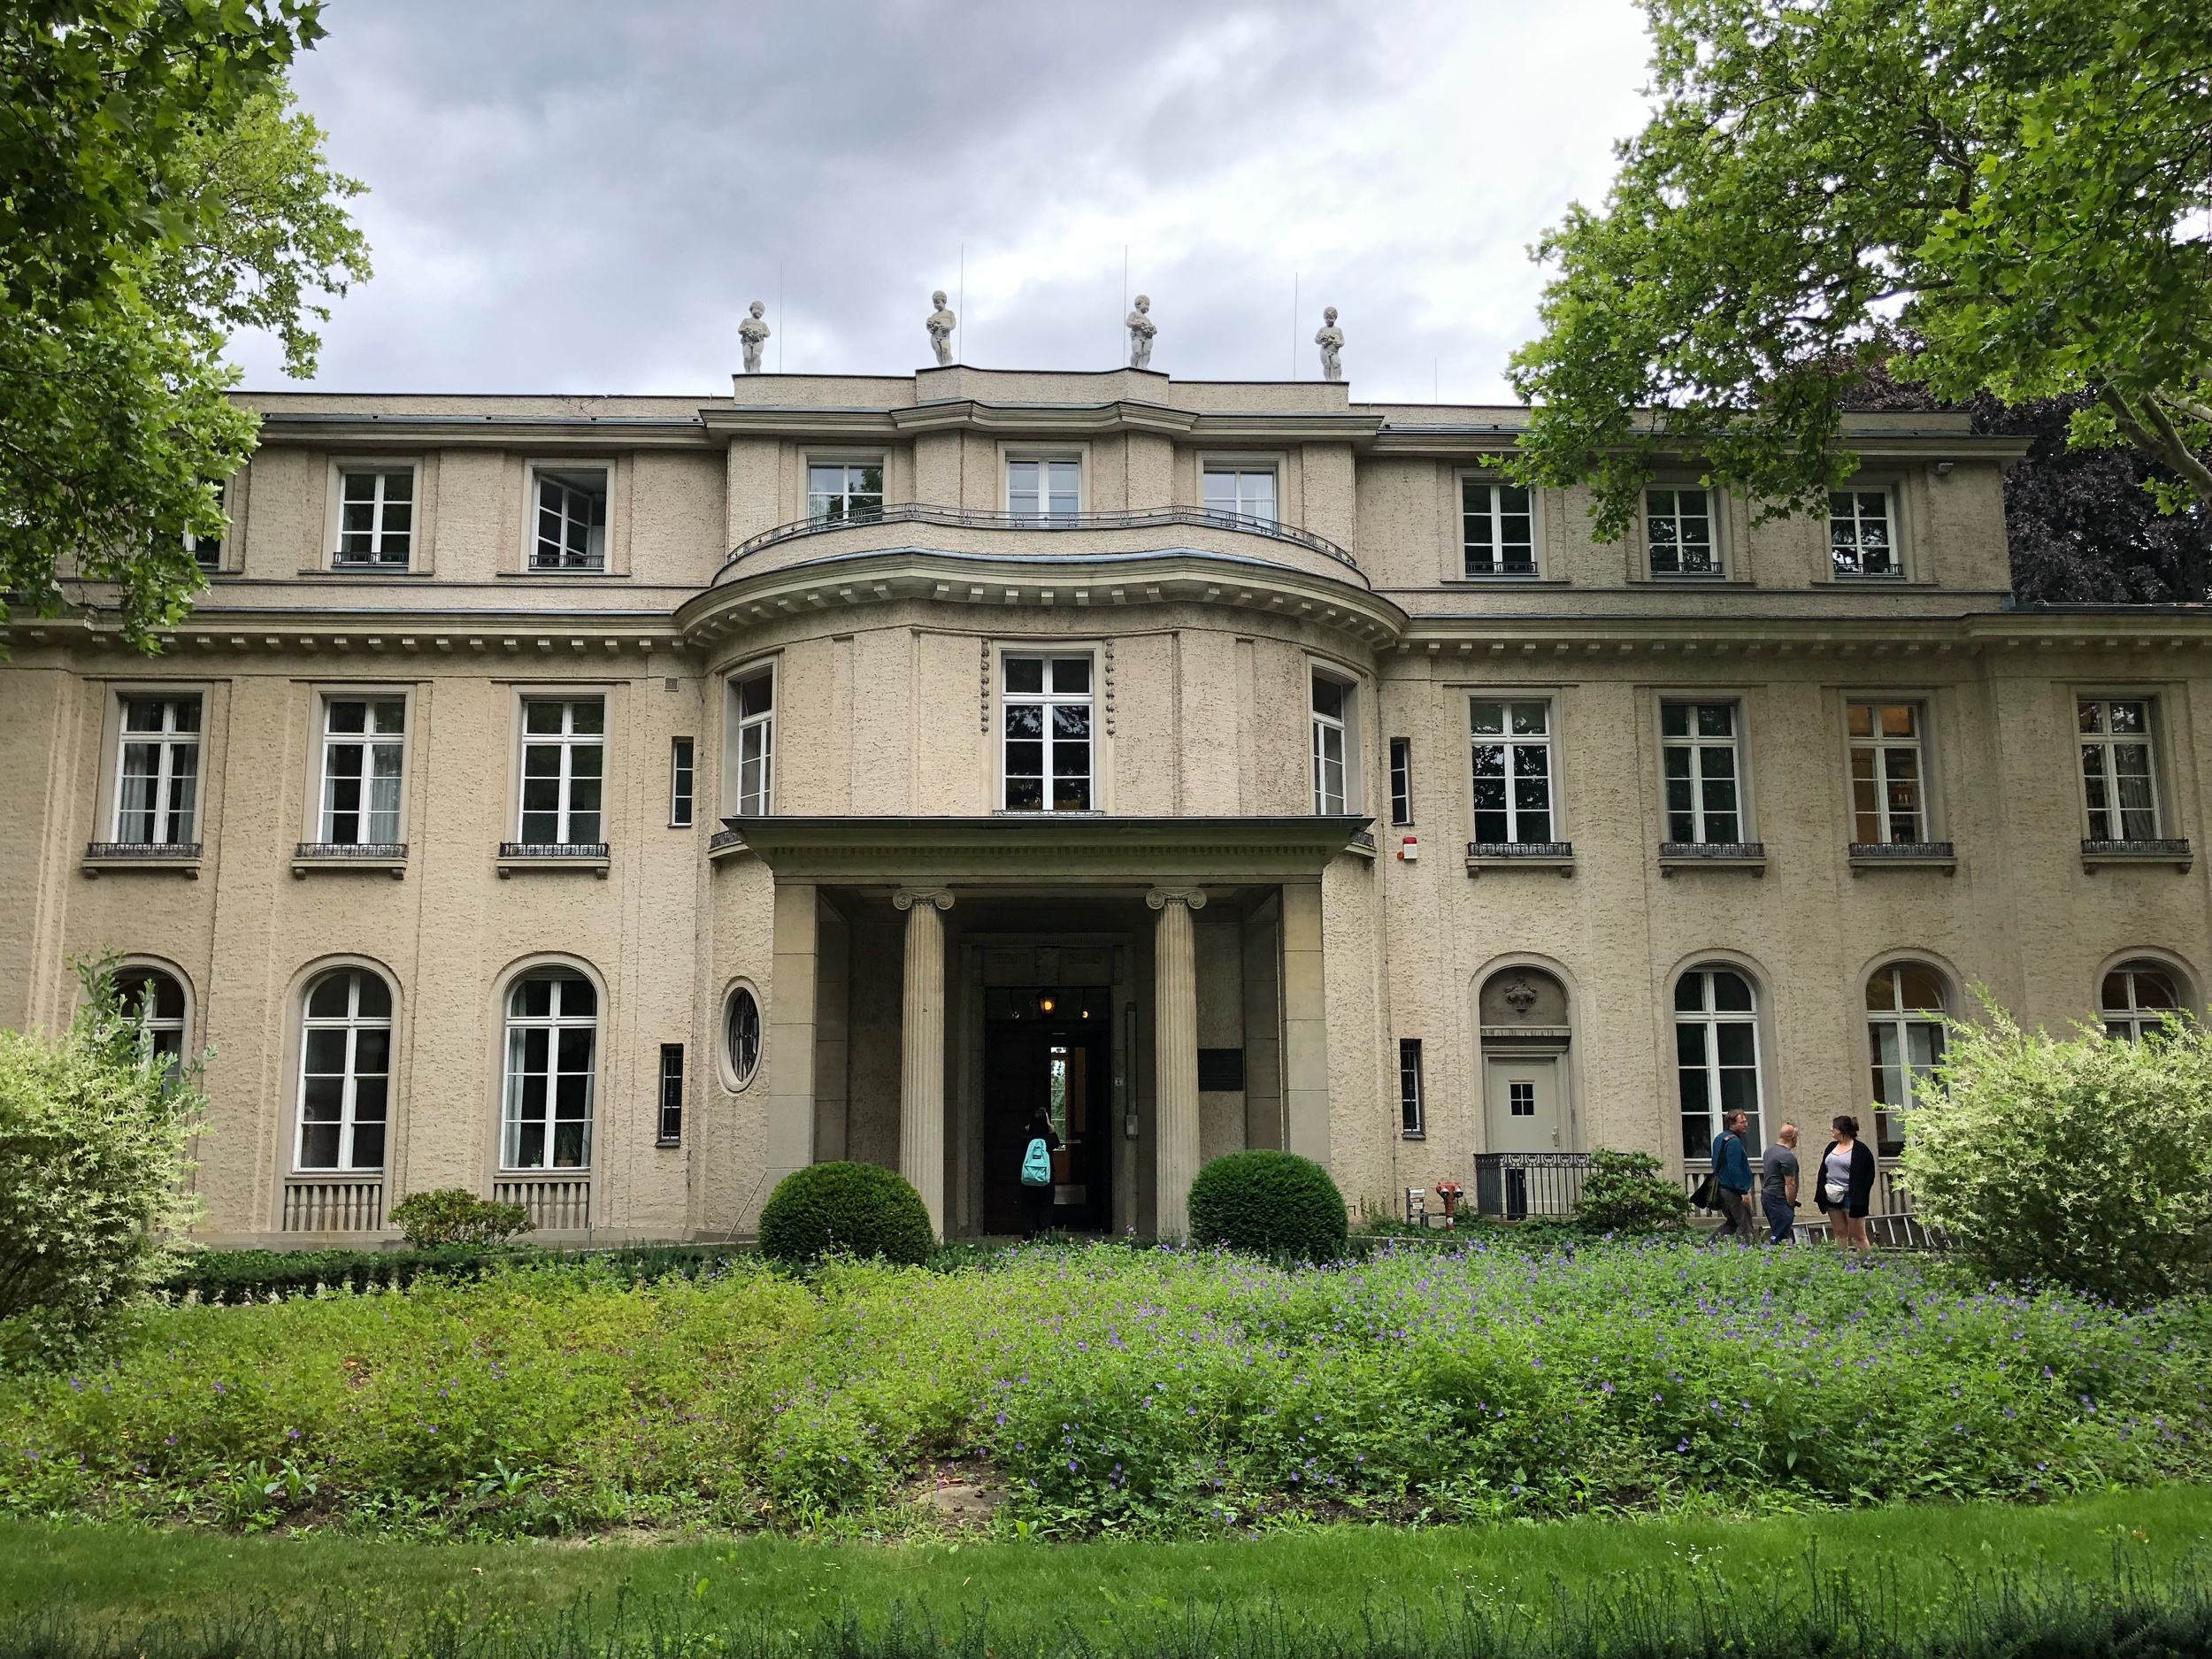 The front of Wannsee House.